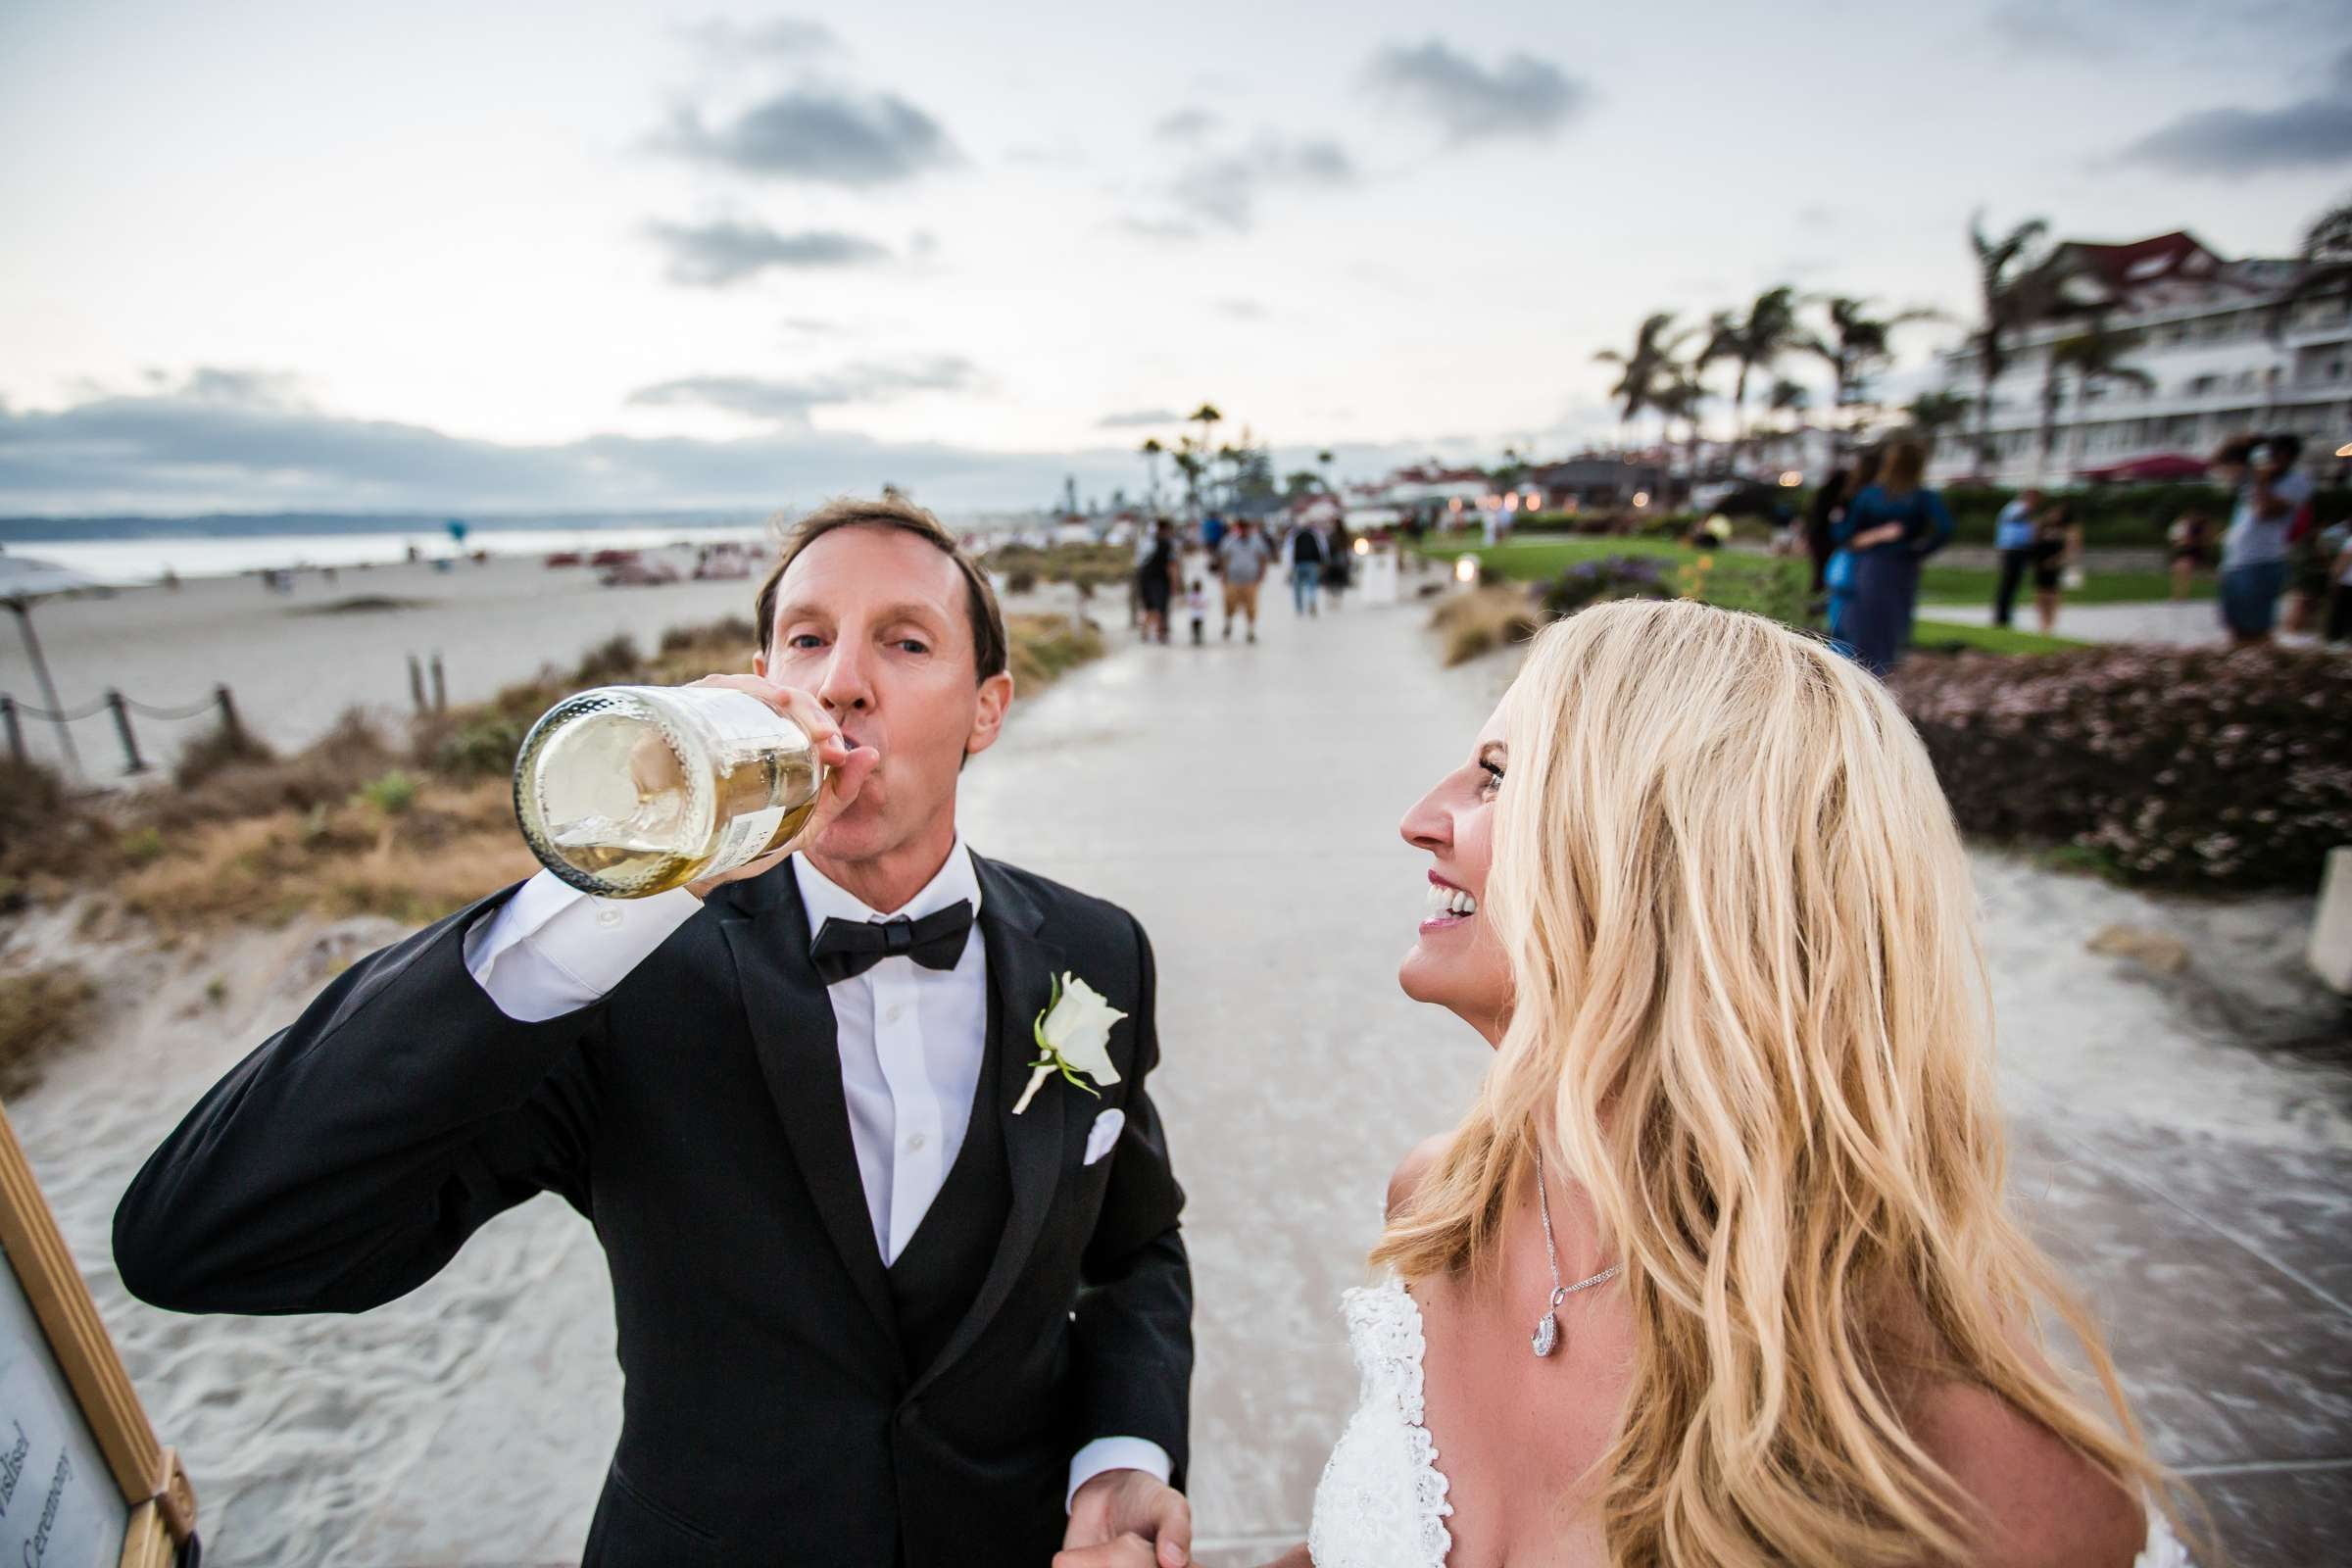 Hotel Del Coronado Wedding coordinated by Creative Affairs Inc, Diane and Paul Wedding Photo #4 by True Photography